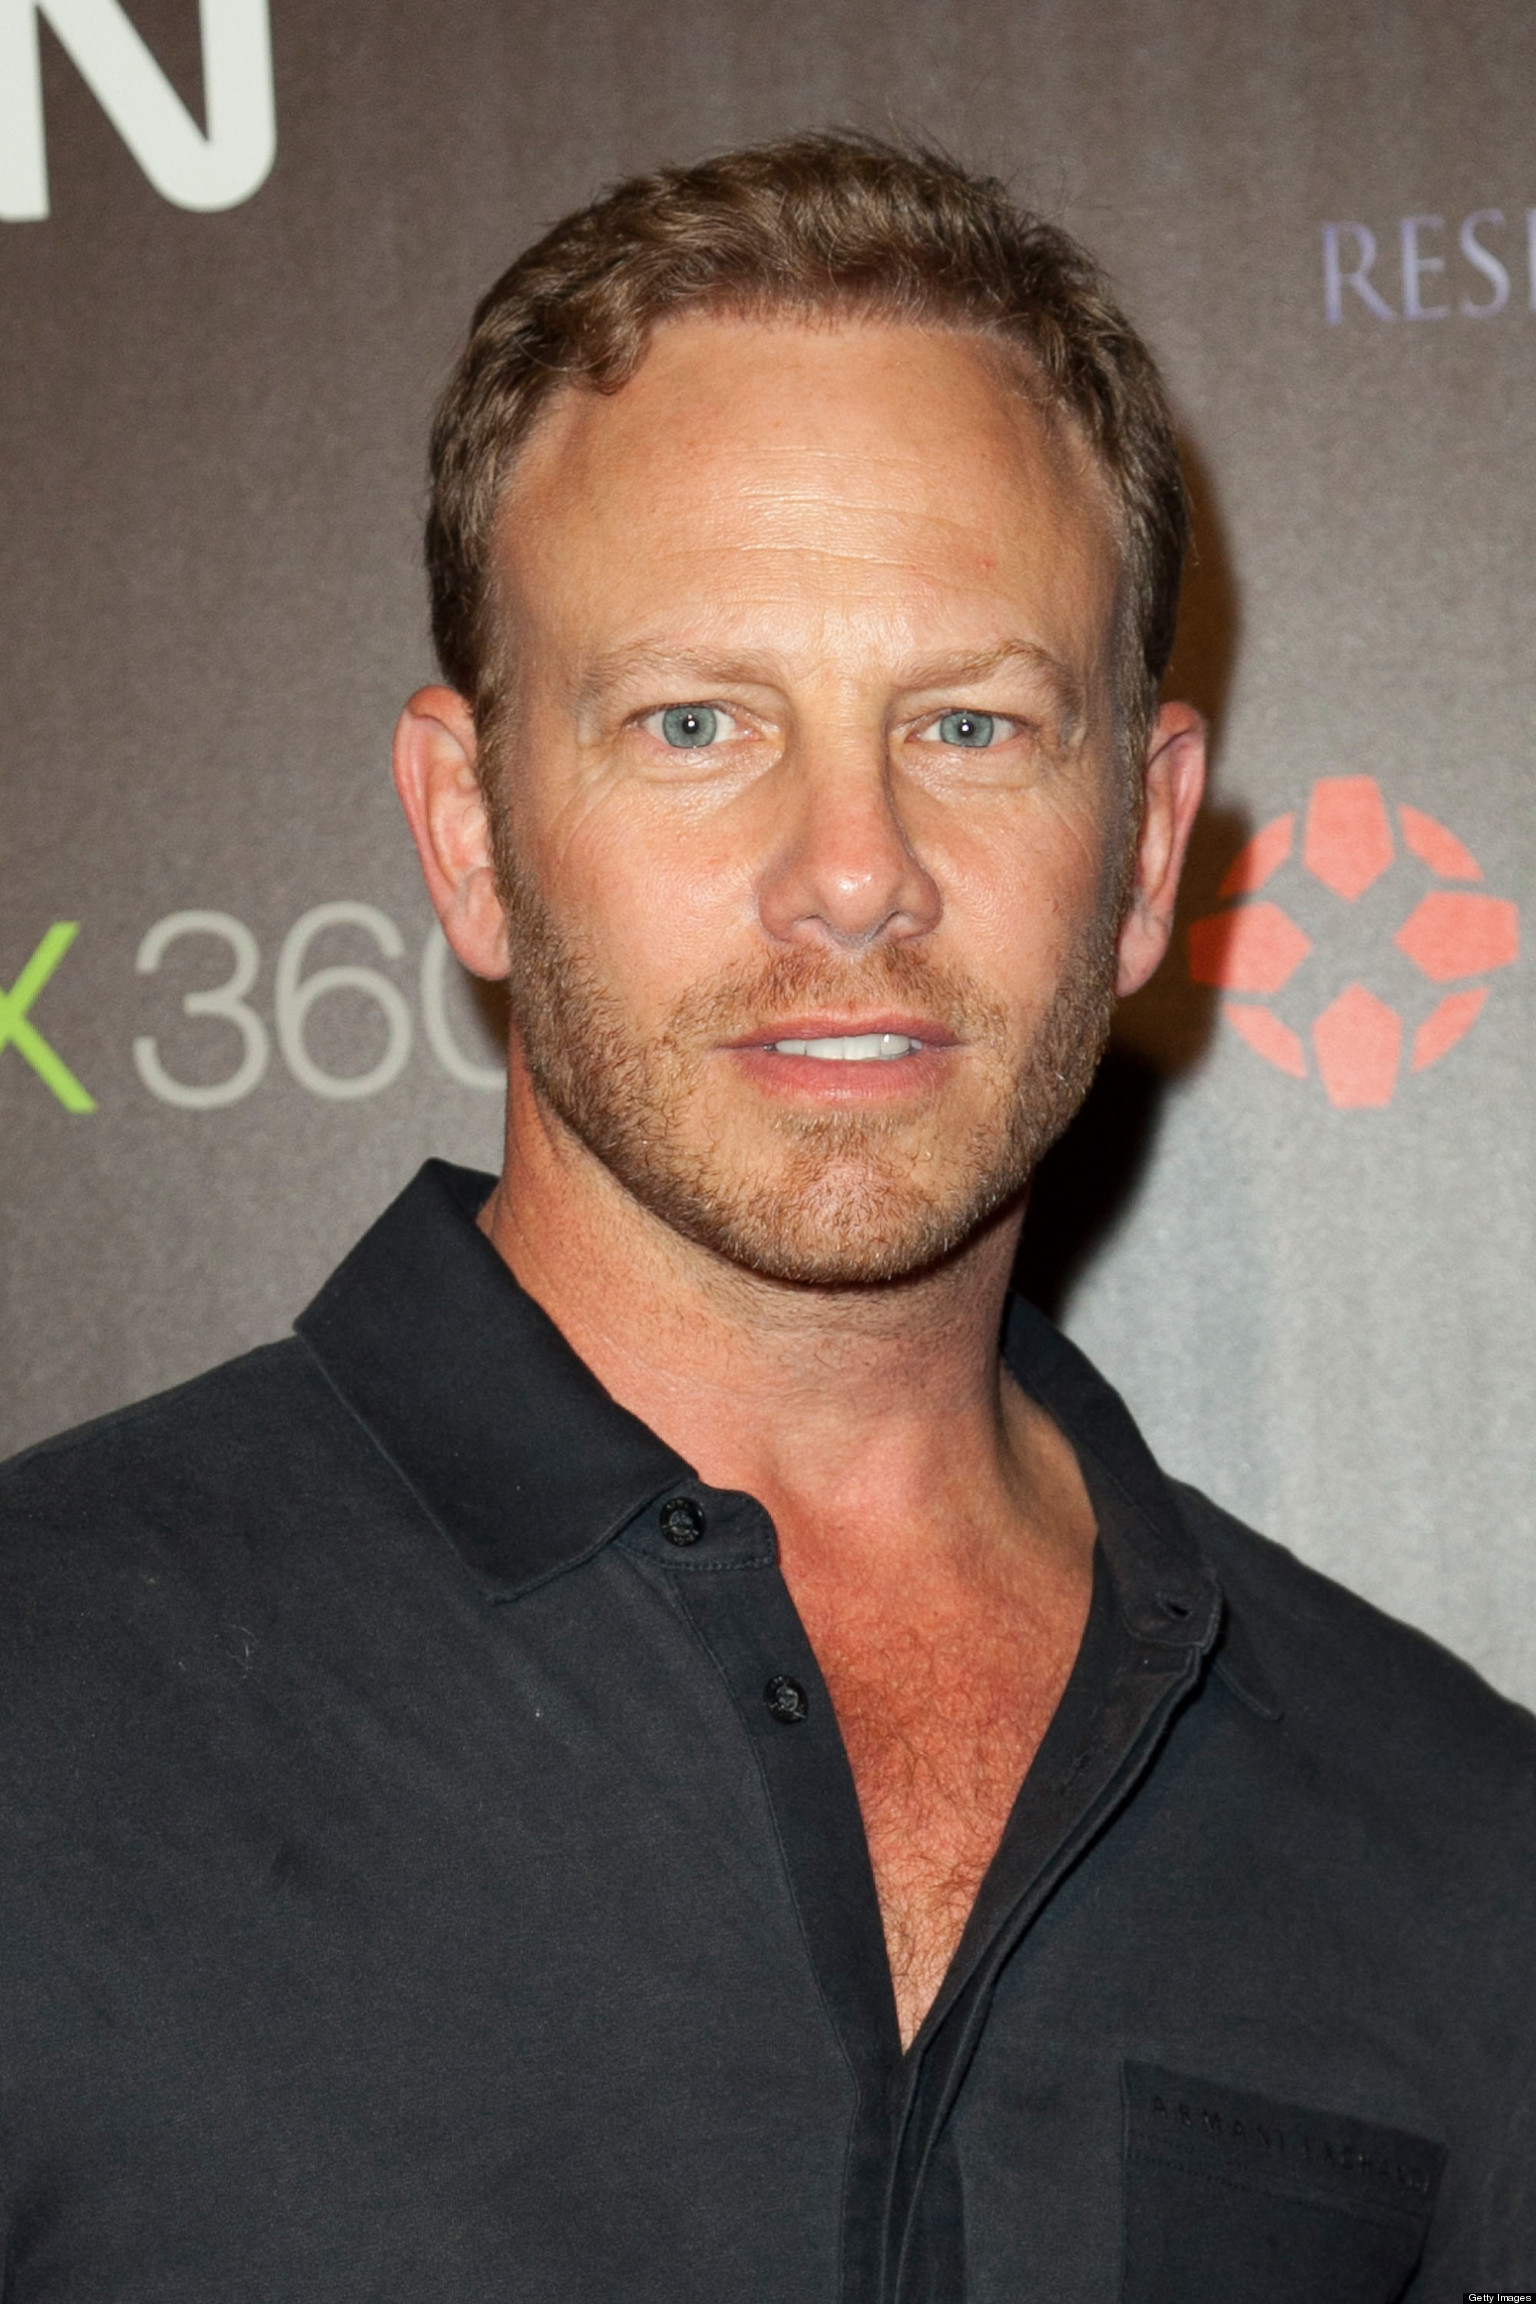 Ian Ziering earned a  million dollar salary, leaving the net worth at 8 million in 2017